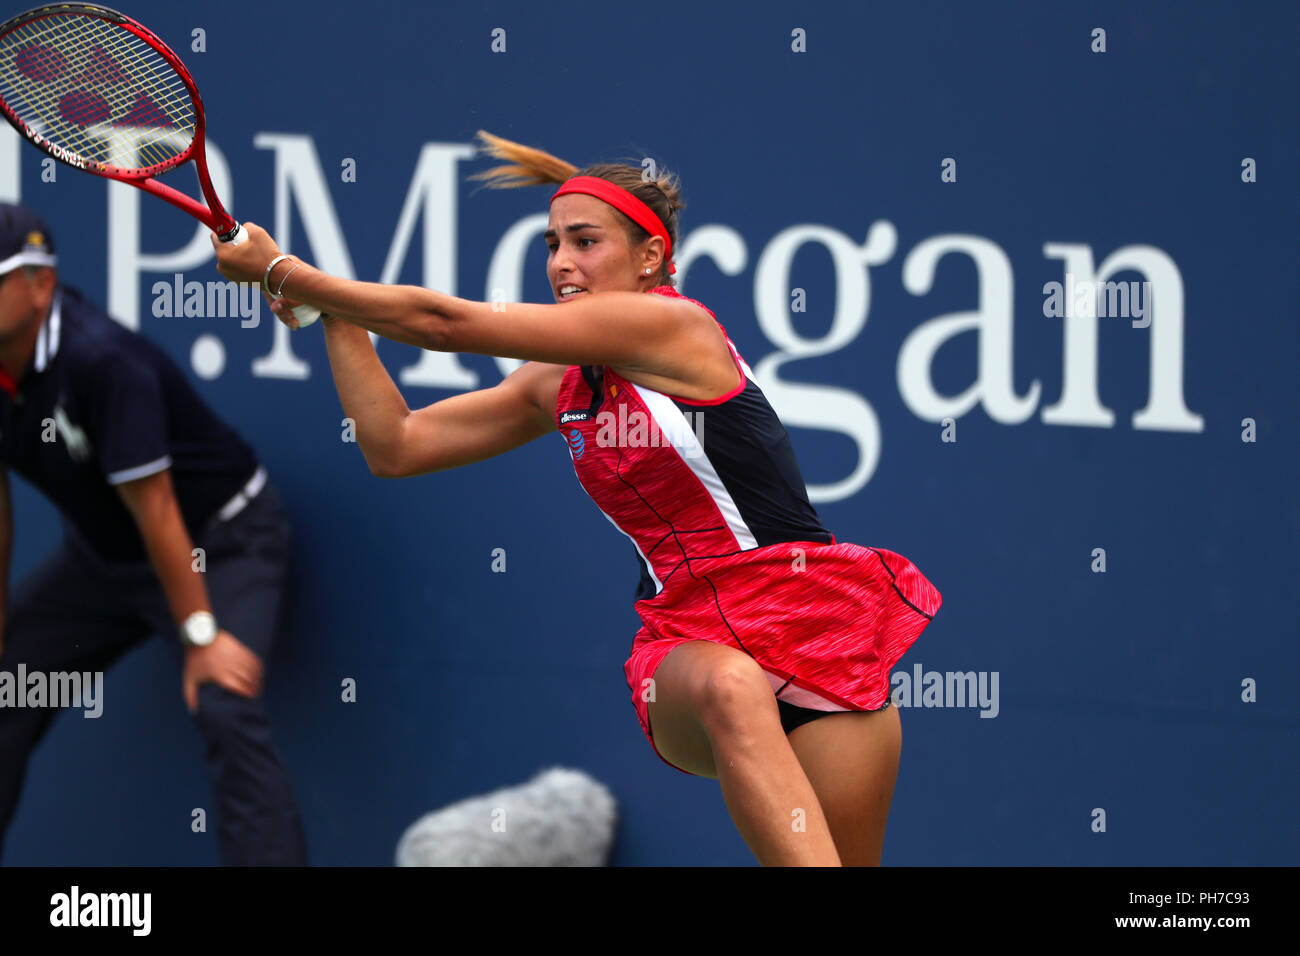 Flushing Meadows, New York - August 30, 2018: US Open Tennis:  Monica Puig of Puerto Rico returns a shot to Caroline Garcia of France during their second round victory over  at the US Open in Flushing Meadows, New York.  Garcia won the match in three sets to advance to the third round Credit: Adam Stoltman/Alamy Live News - Stock Image